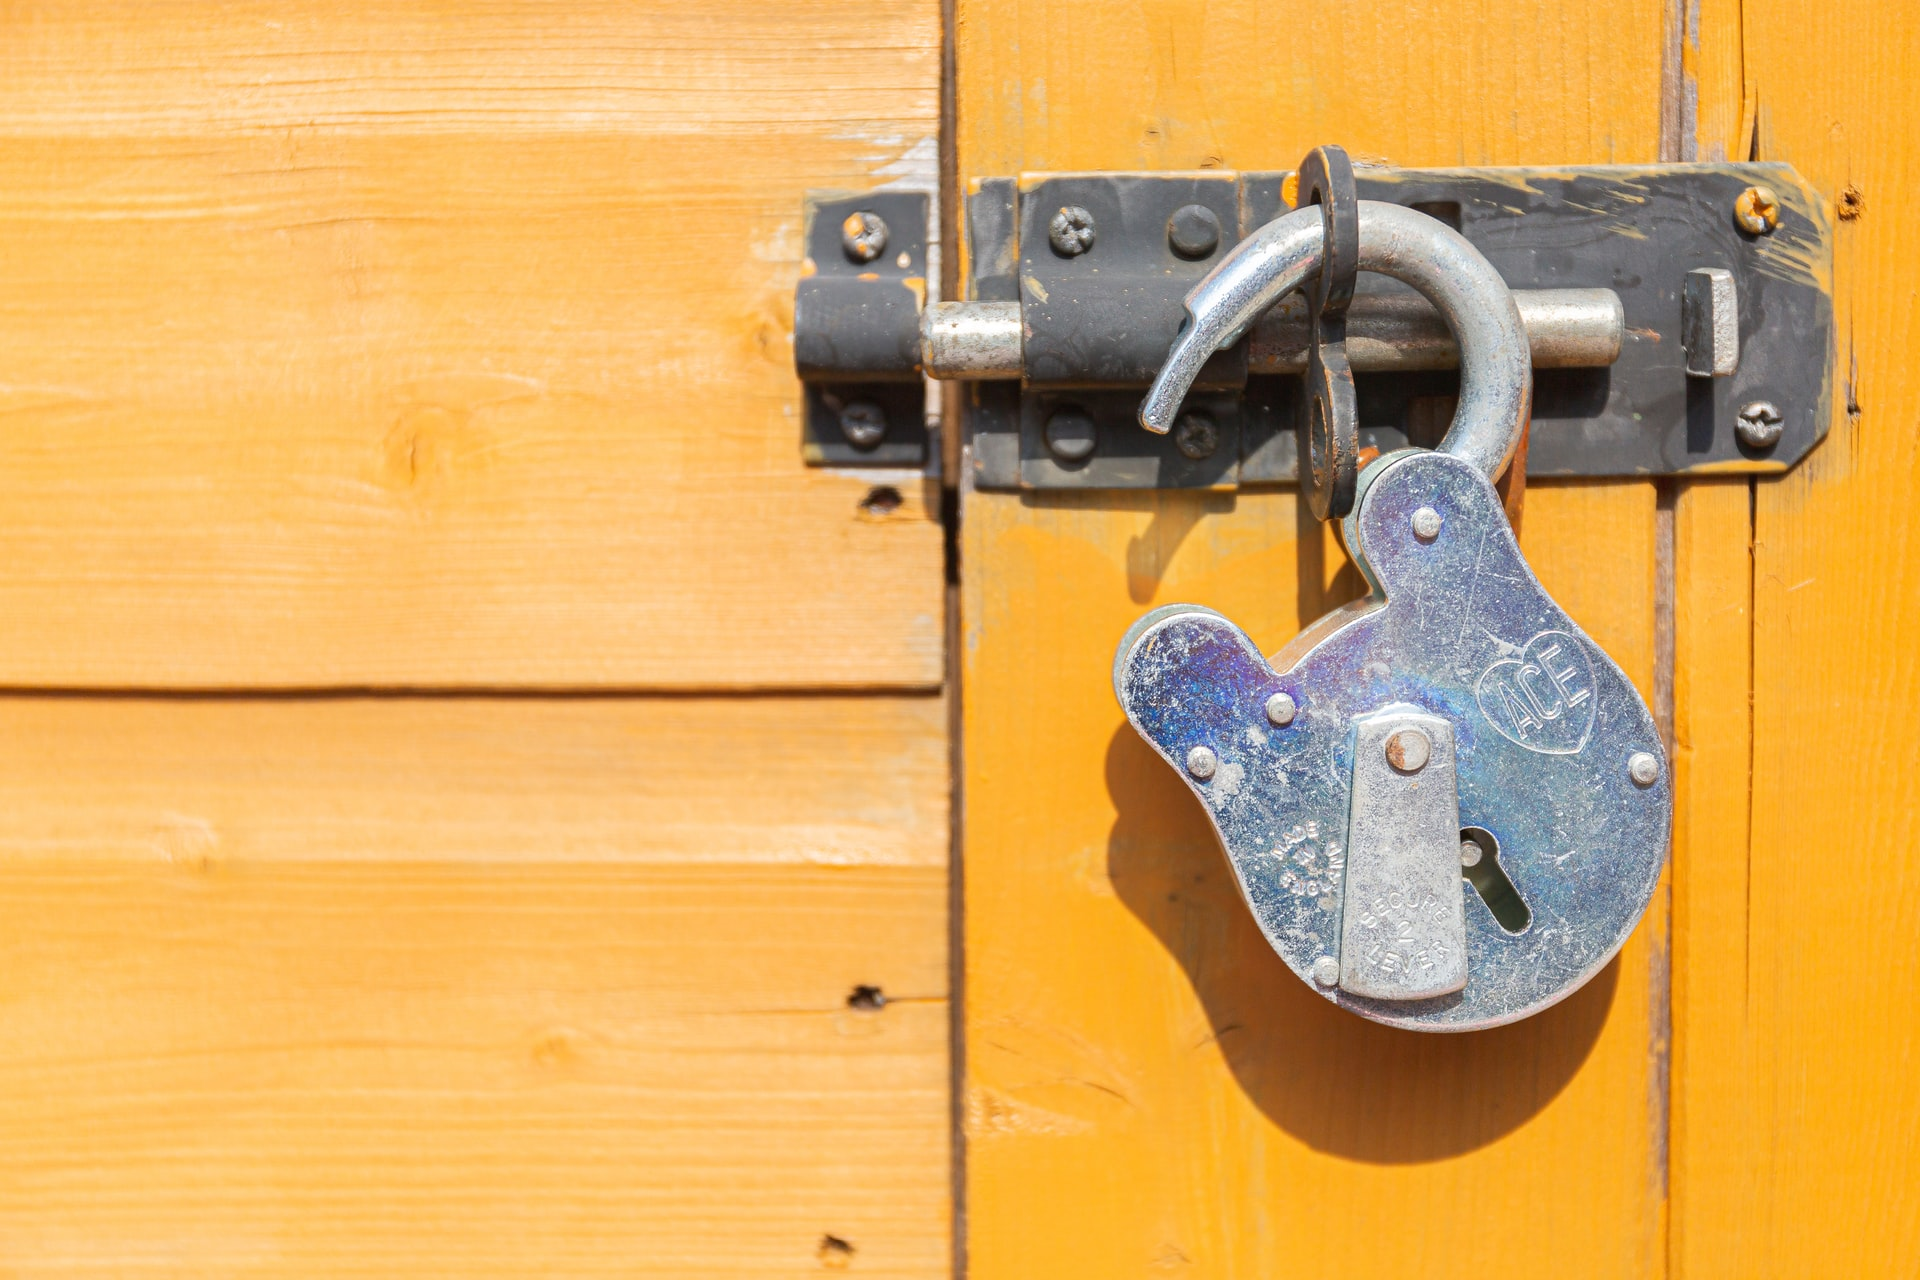 Unlocked padlock on yellow background